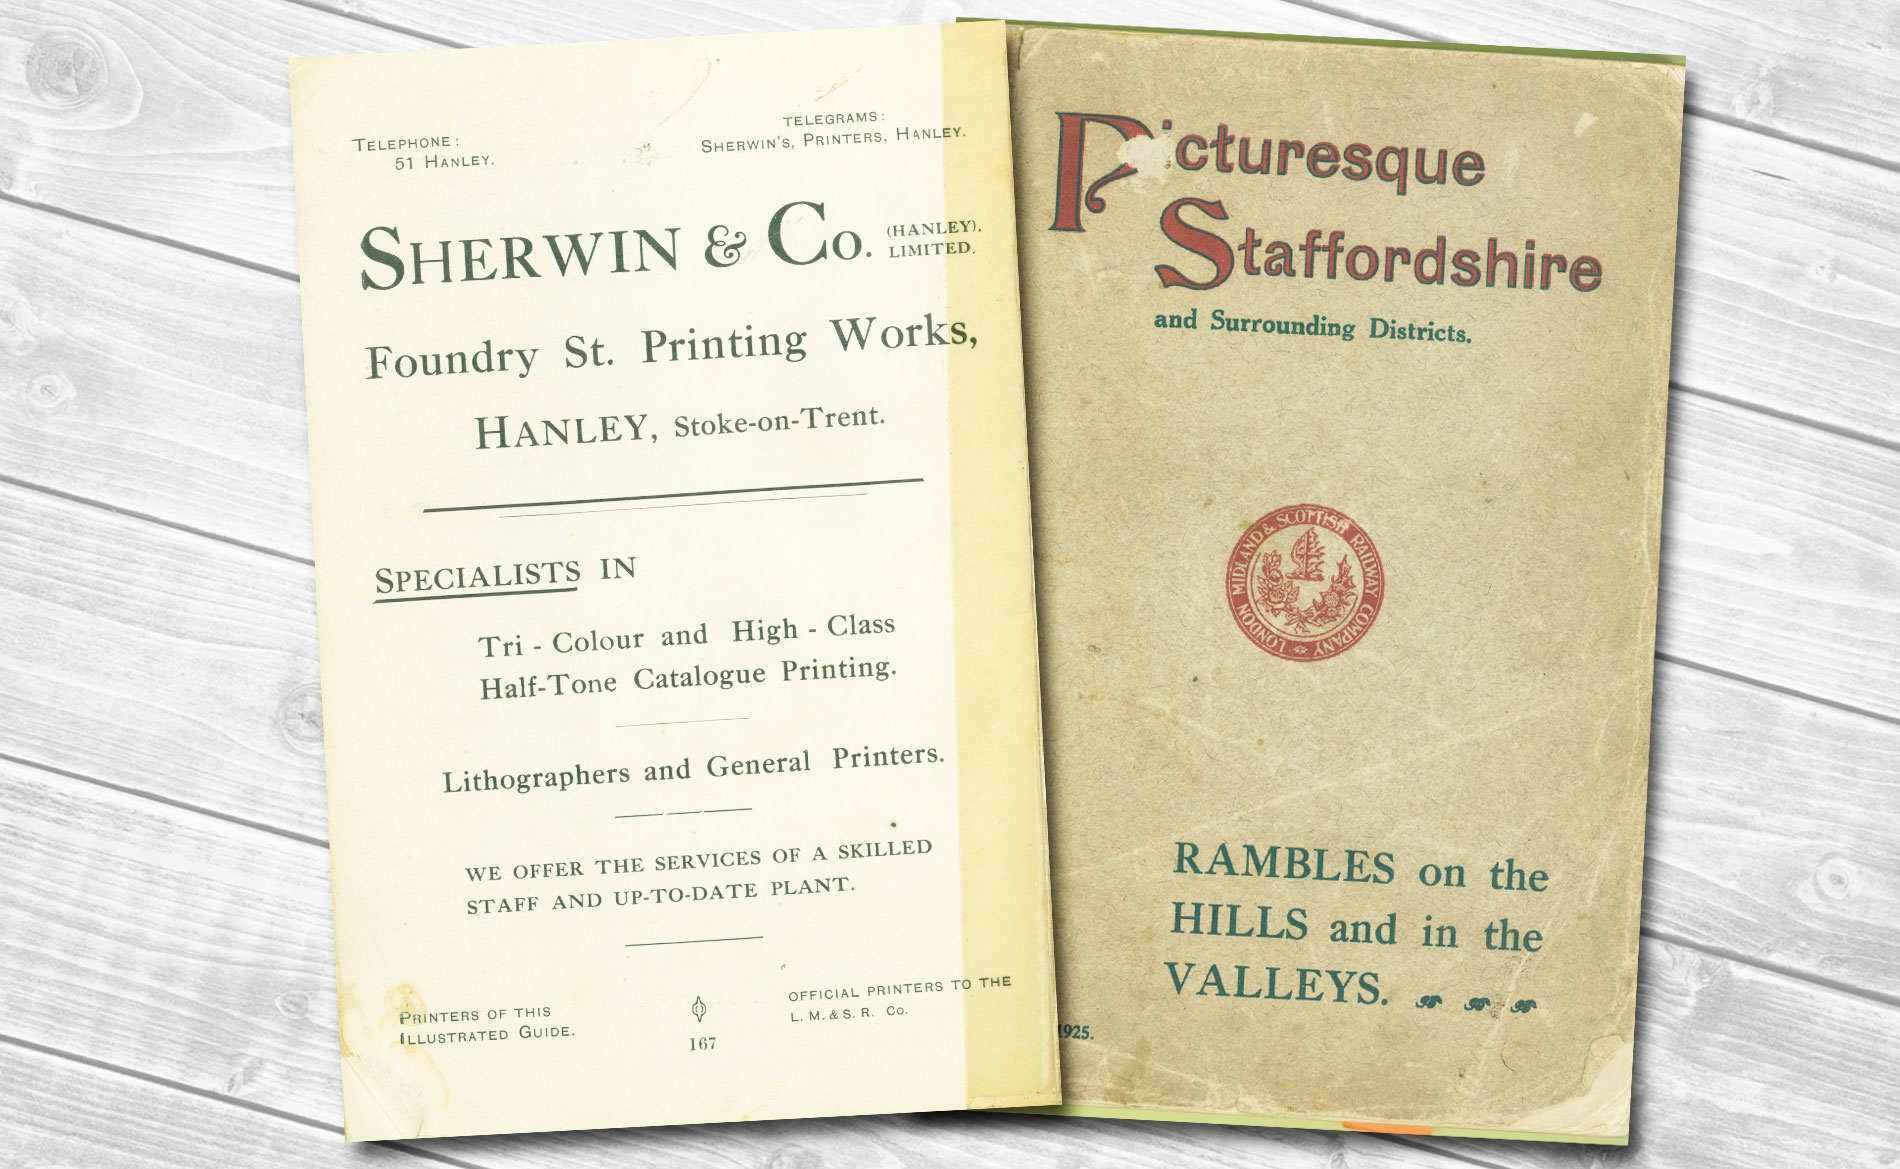 Sherwin Rivers Printers Ltd - Stoke-on-Trent, Staffordshire, Family run printing company for over a century - Sherwin & Co's Picturesque Staffordshire, printed in 1925 for the London Midland and Scottish Railway by Sherwin & Co, Hanley. (Advert in back of book).